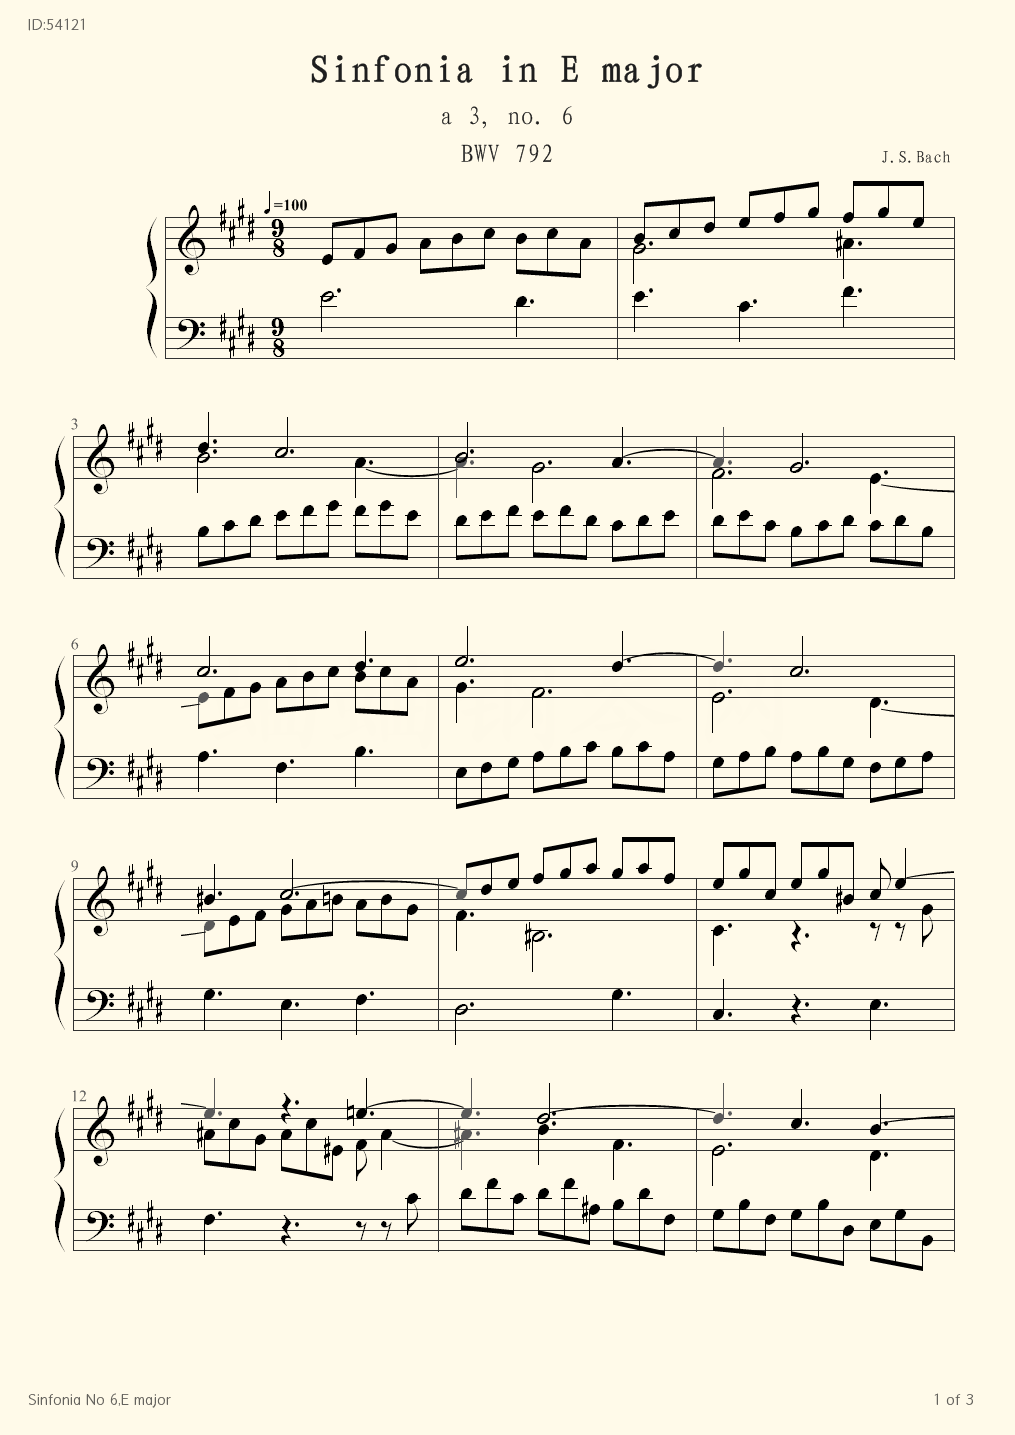 Sinfonia No 6 E major - Bach - first page